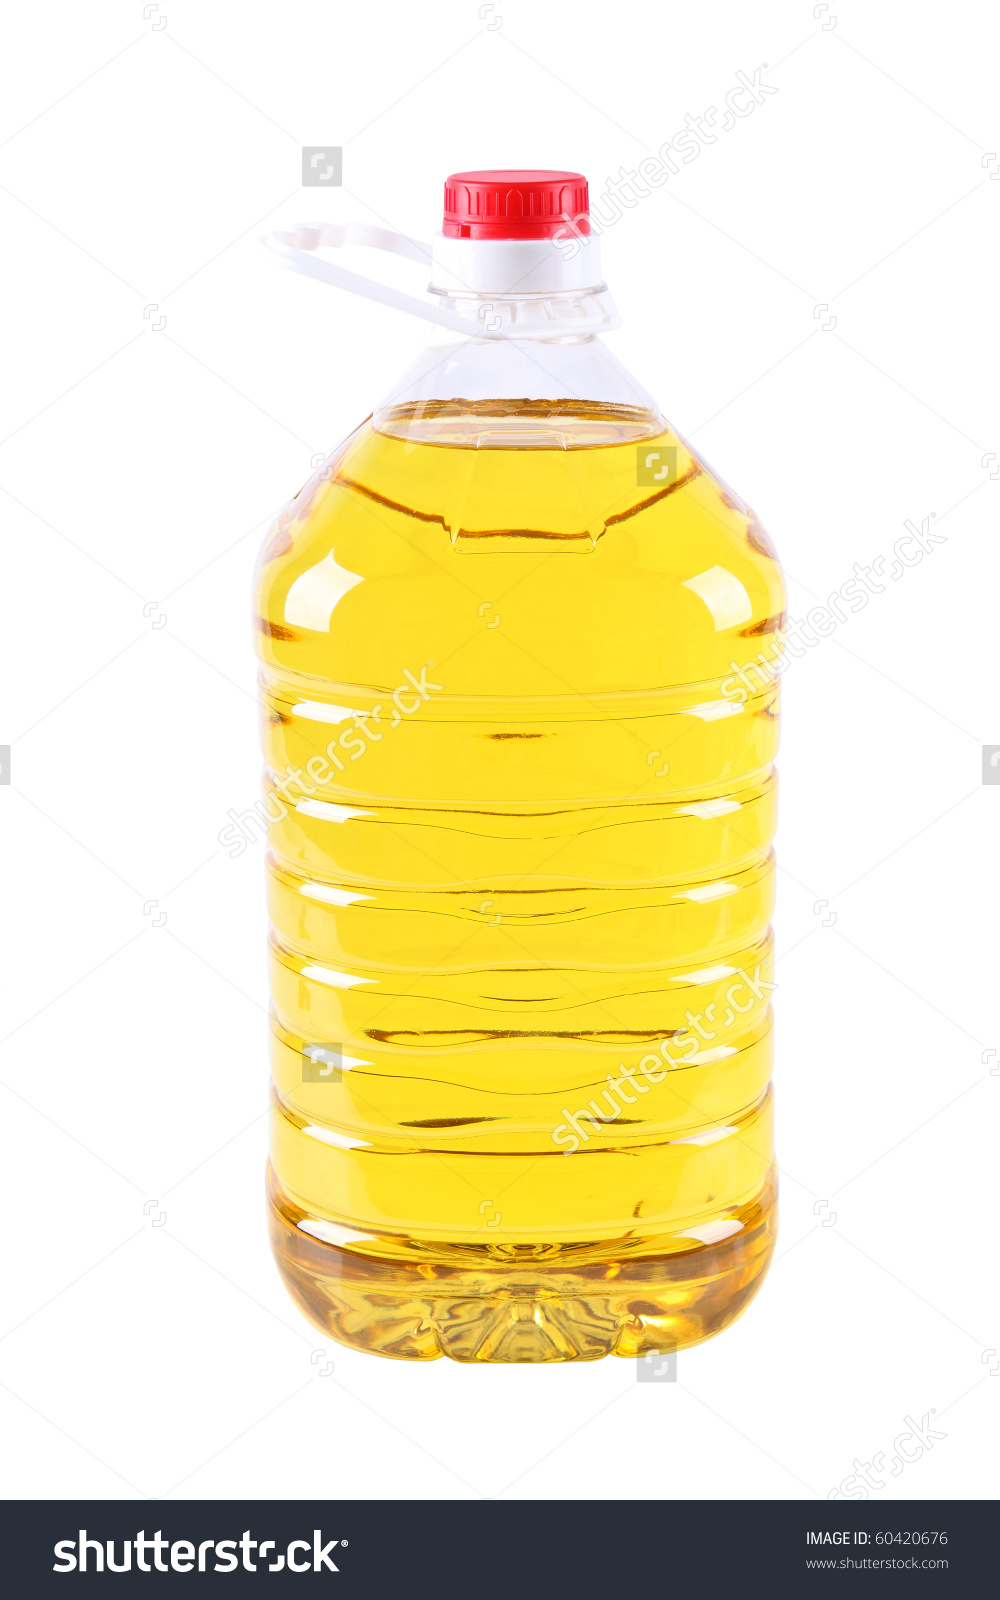 Cooking oil clipart 6 » Clipart Station.